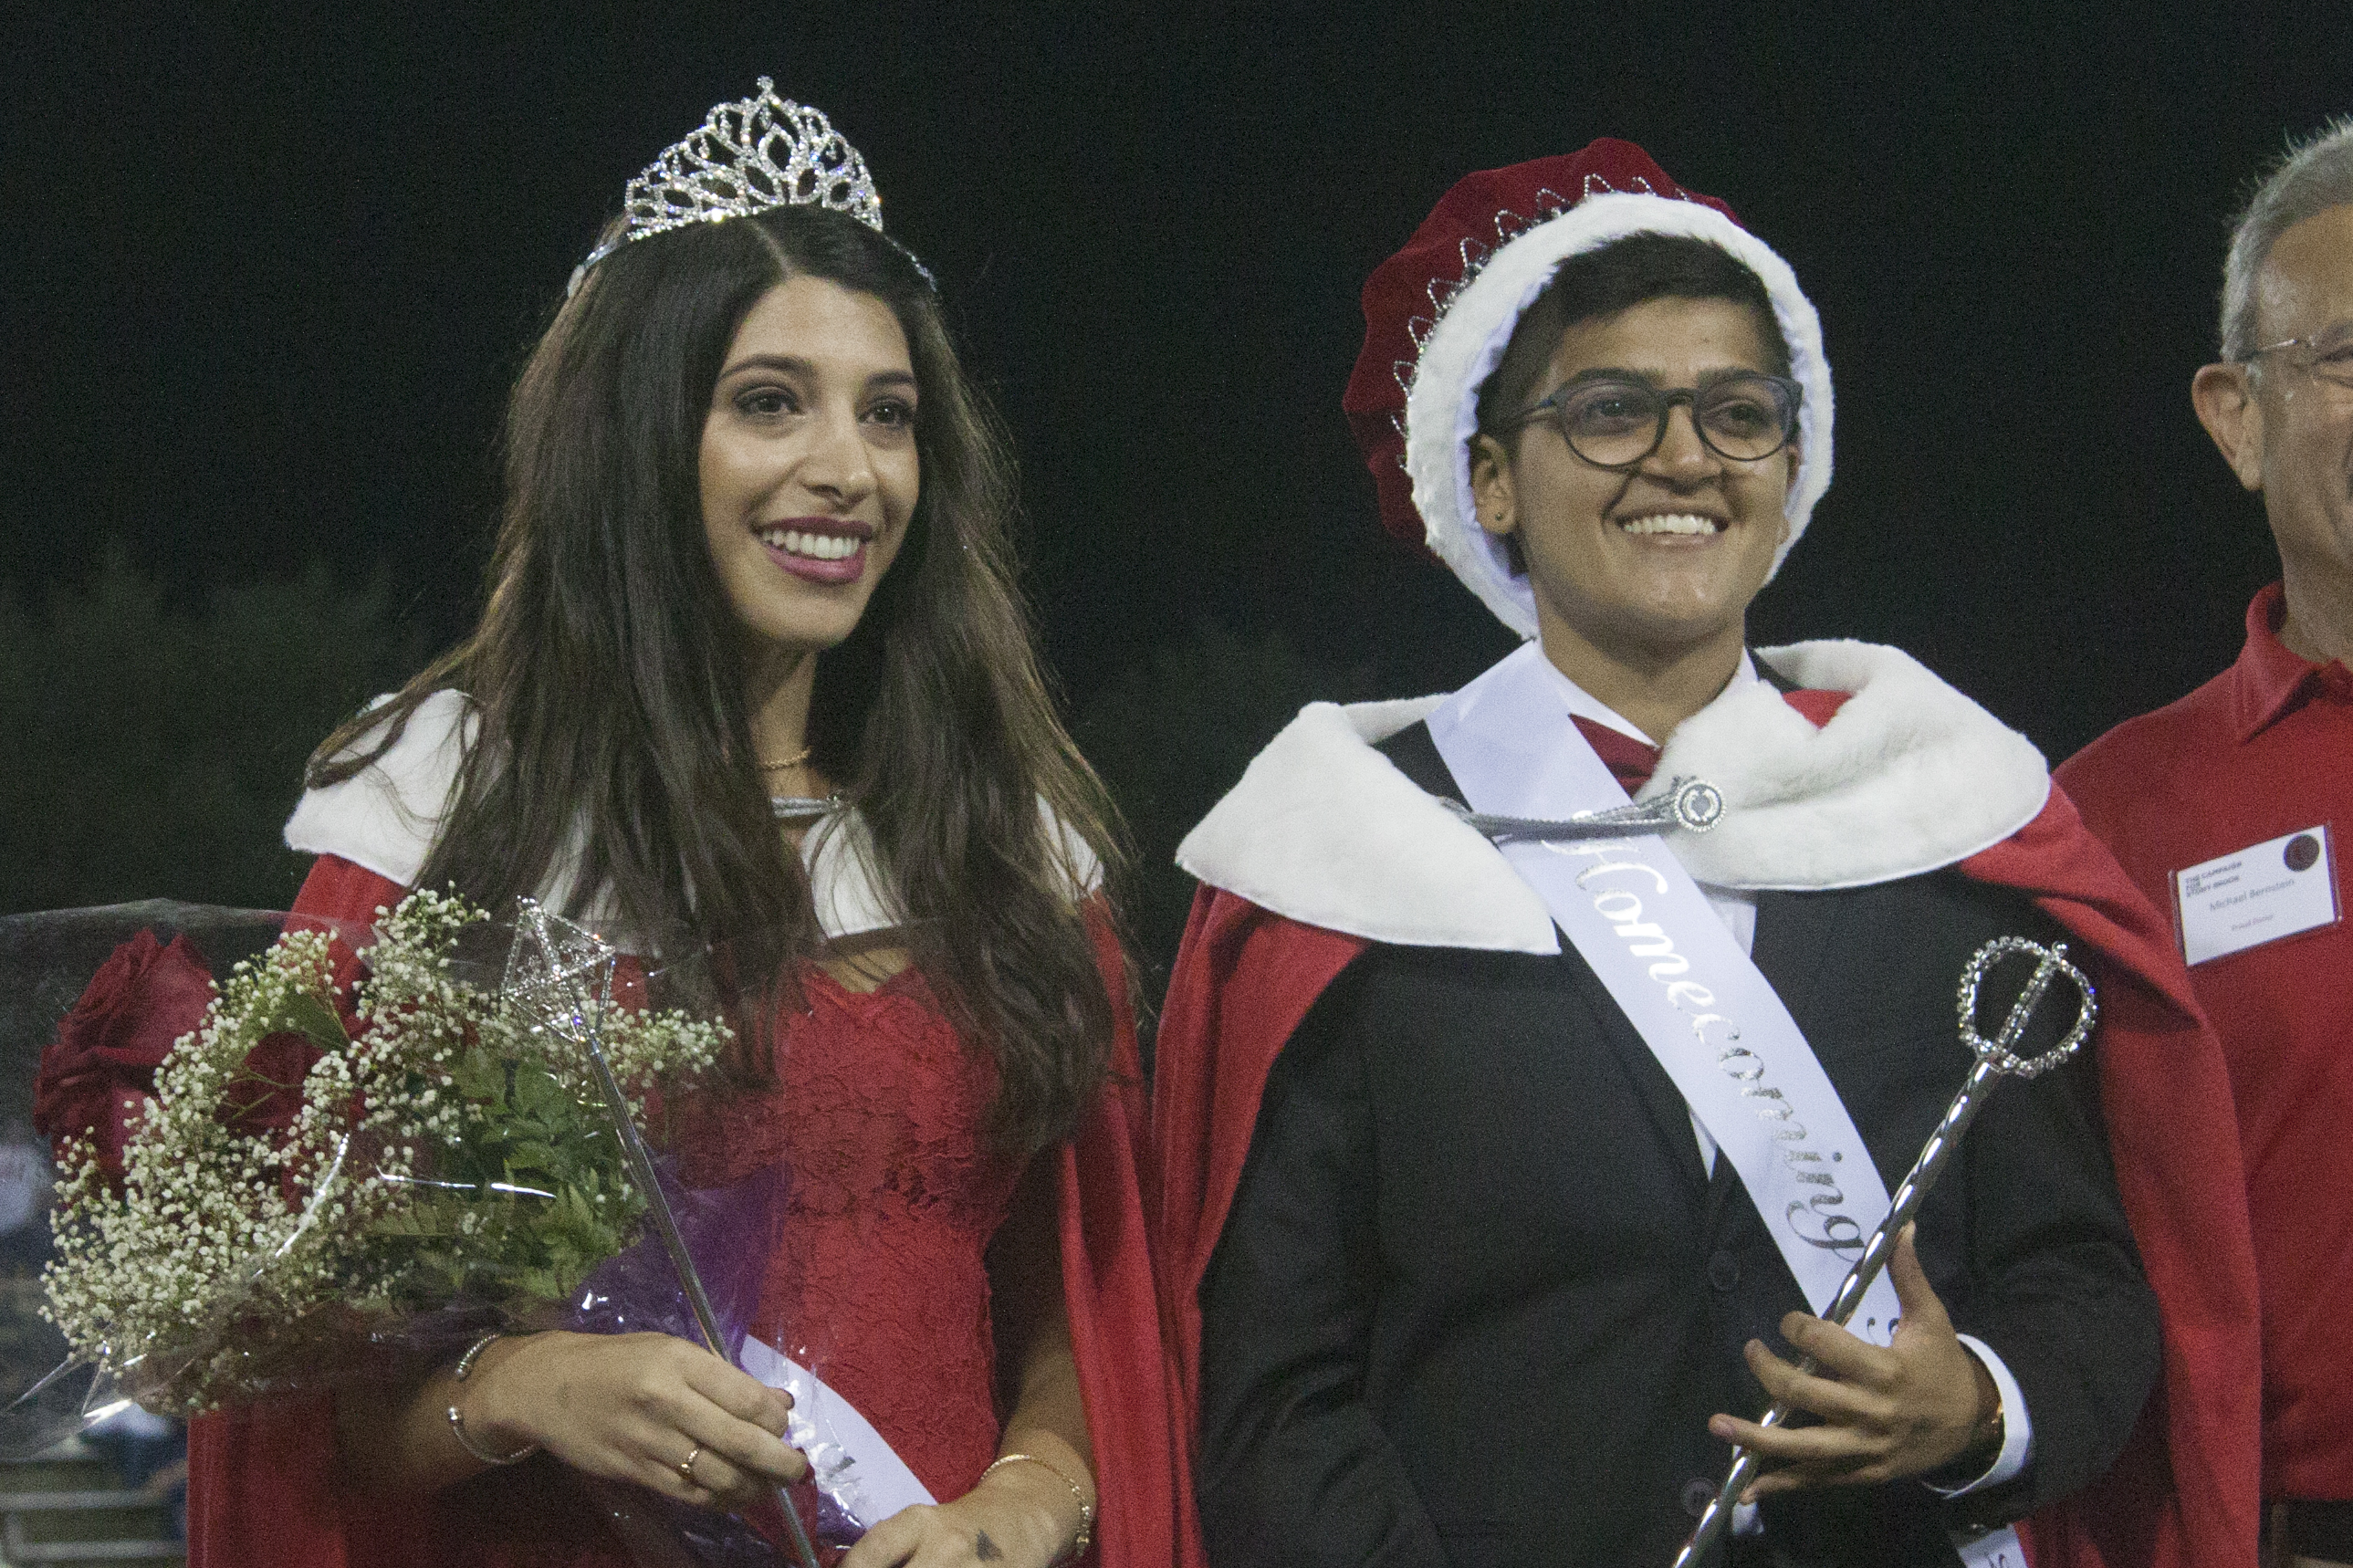 Veronica Fox (left) and PP Pandya (right) were crowned Homecoming Queen and King. <em>ARACELY JIMENEZ/THE STATESMAN</em>